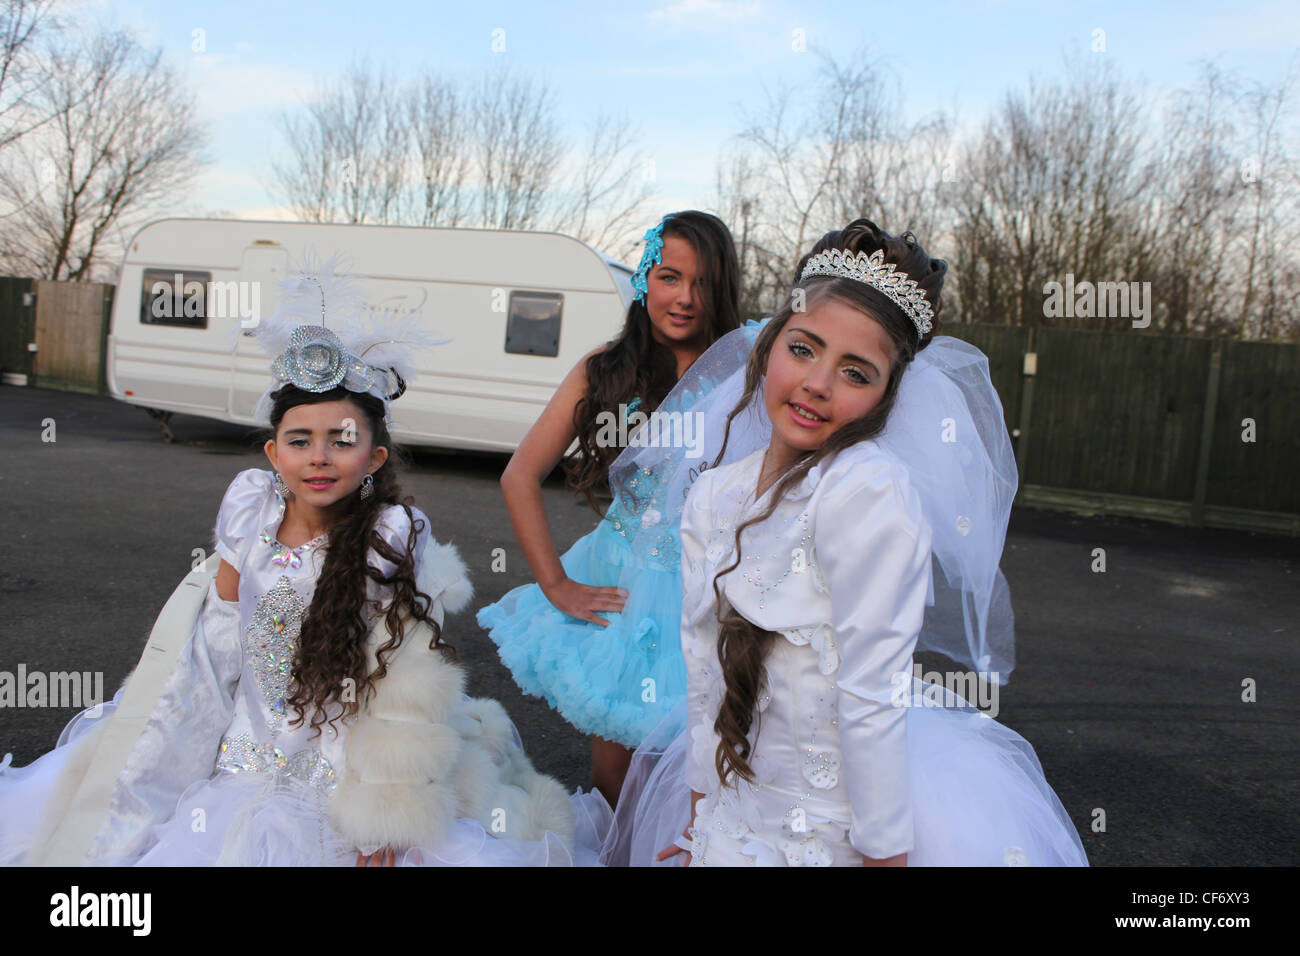 Communion Dresses Stockfotos & Communion Dresses Bilder - Alamy